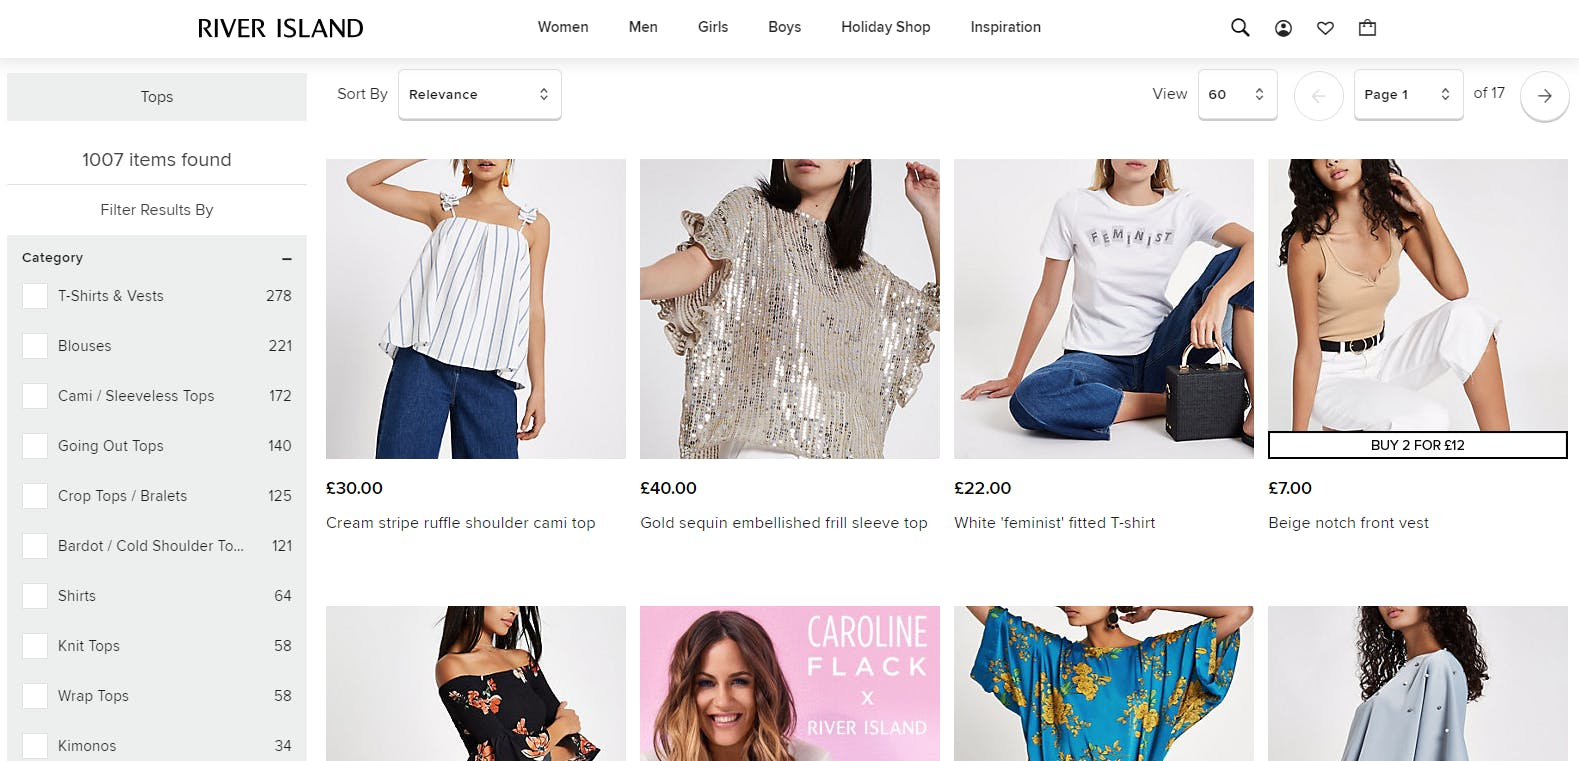 9a66d0c53ea ... and Fashion Network reported last year that the company has committed  to doubling its size